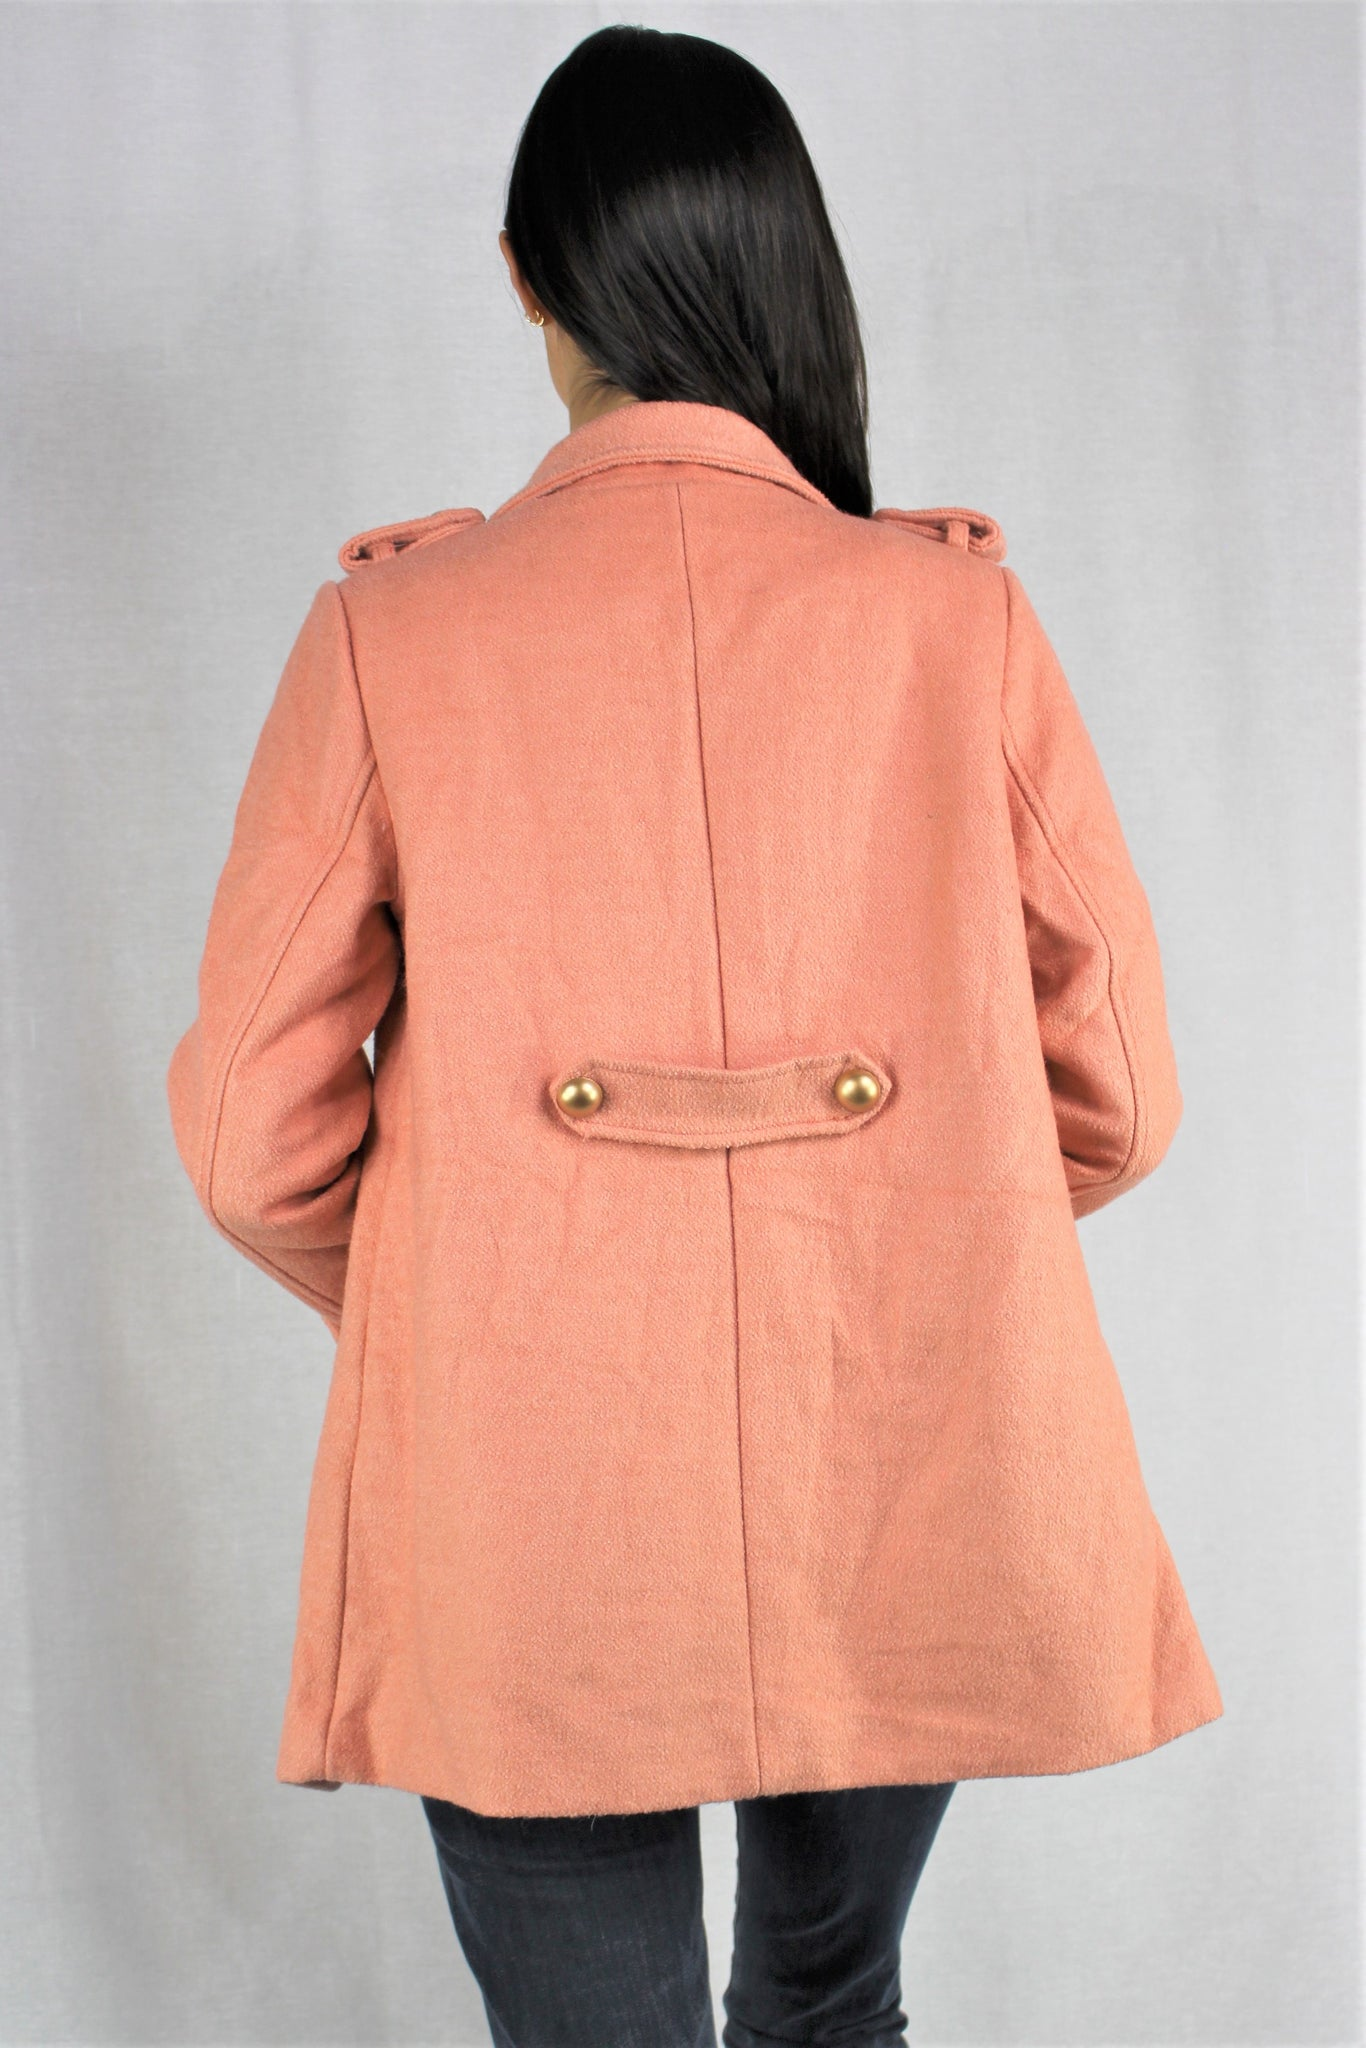 Women's Stylish Button Up Tweed Coat with Pockets